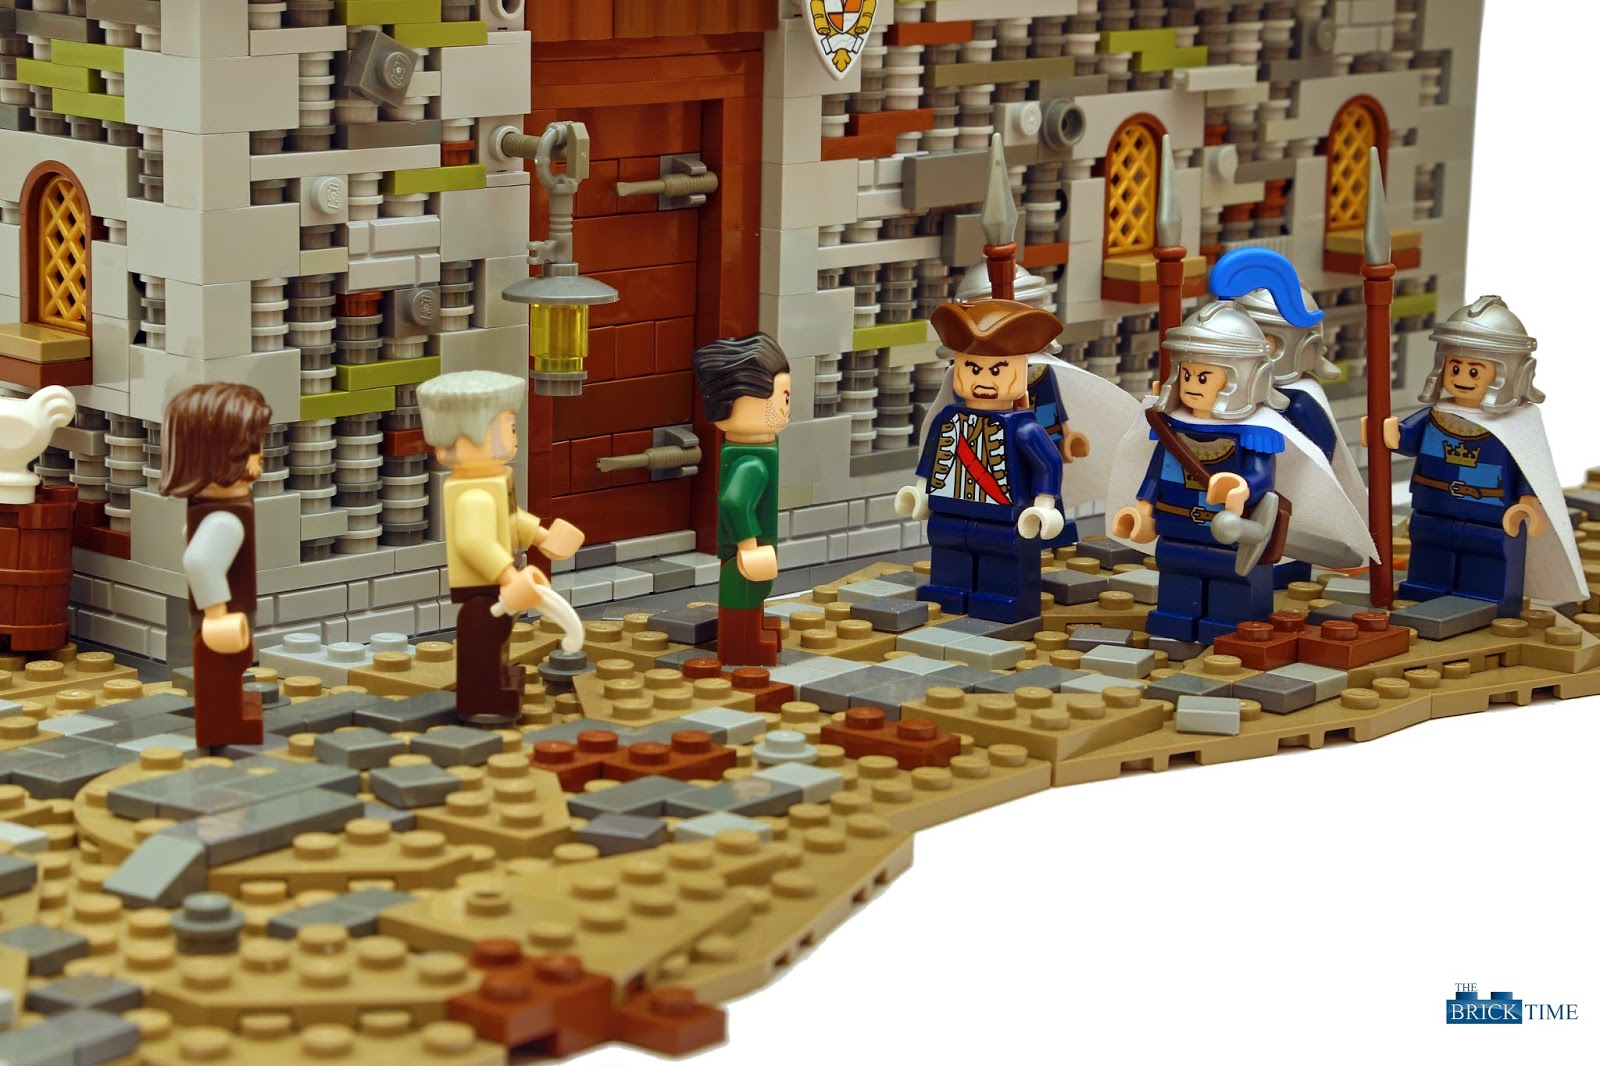 "Lego Soldiers coming to take taxes from the poor! Stupiud IRS... All rights reserved ""The tax inspector"" by THE BRICK TIME Team"